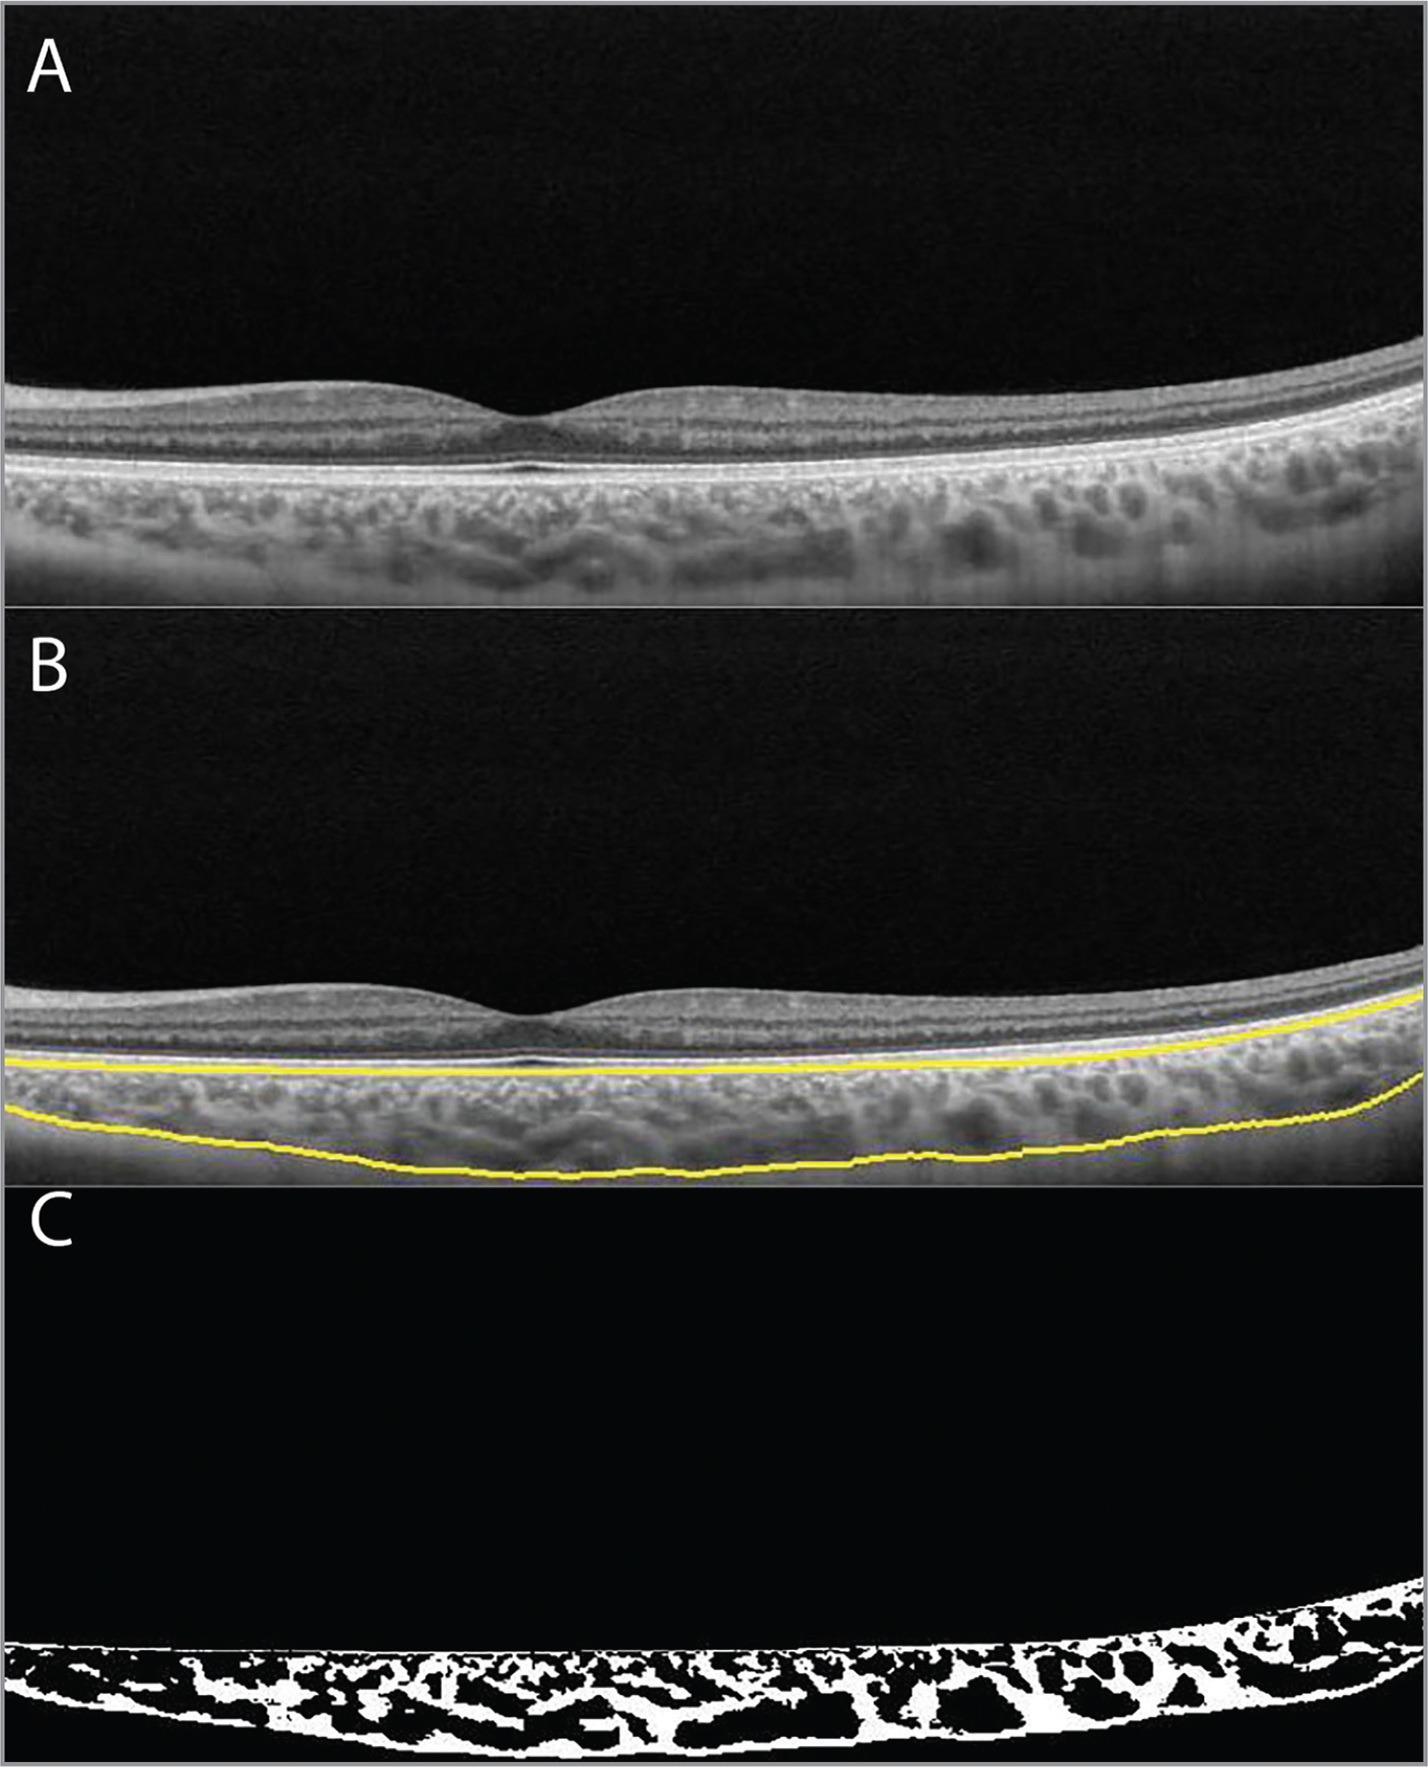 (A) Representative swept-source scan passing through fovea of a patient with retinitis pigmentosa. (B) The automated choroidal segmentation. (C) The binarized image of the scan.